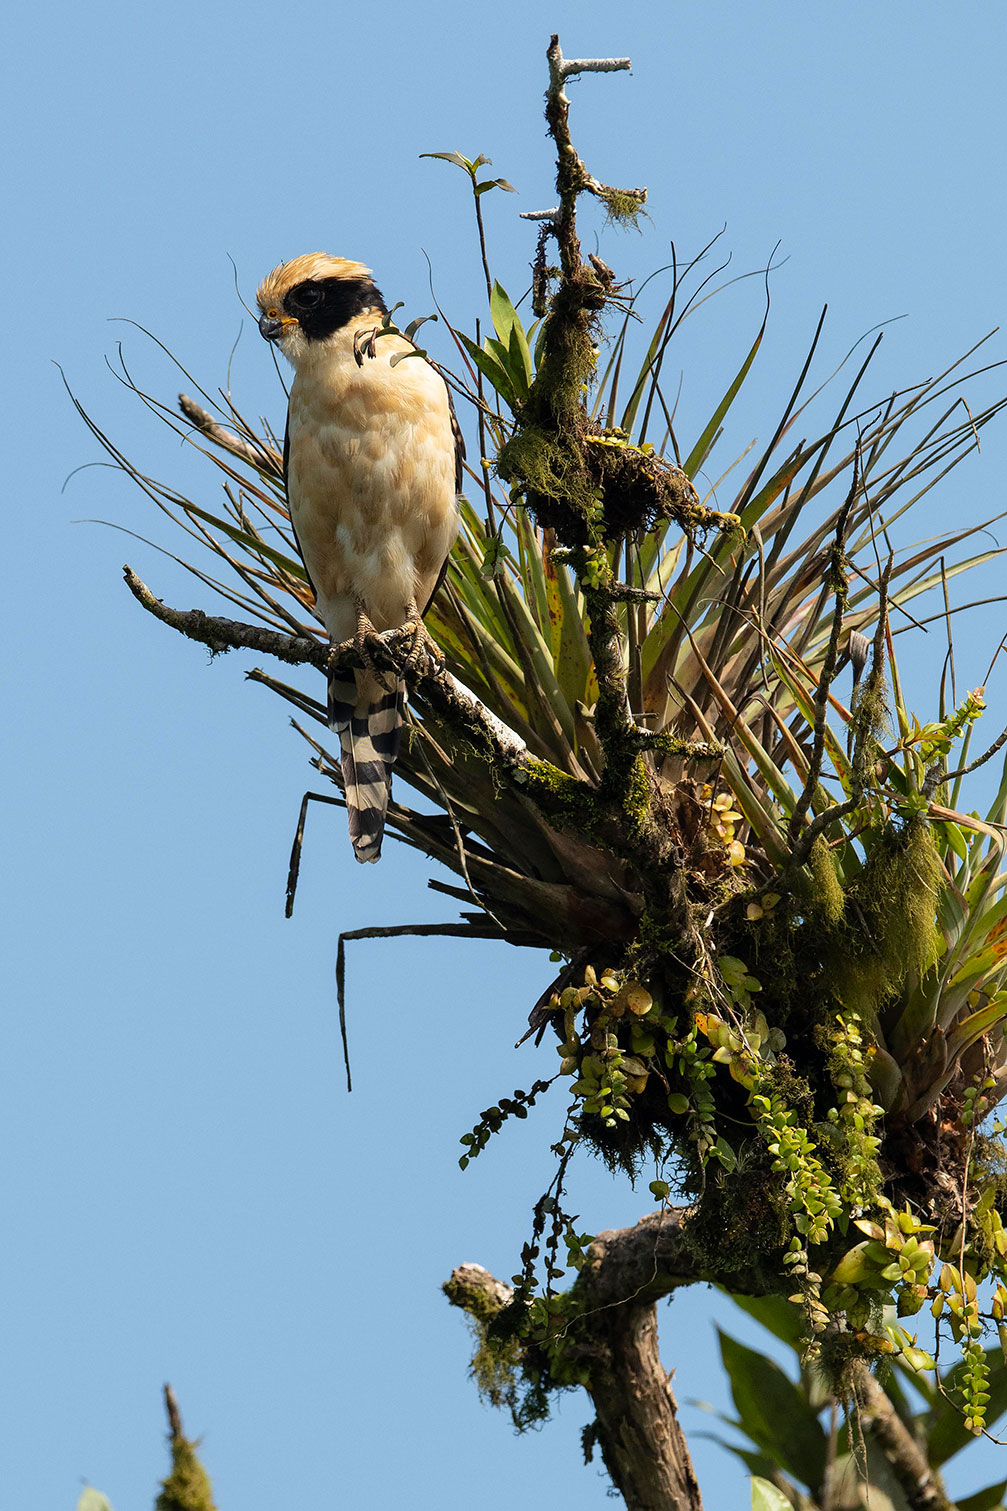 A large bird atop a tall tree watches the forest below